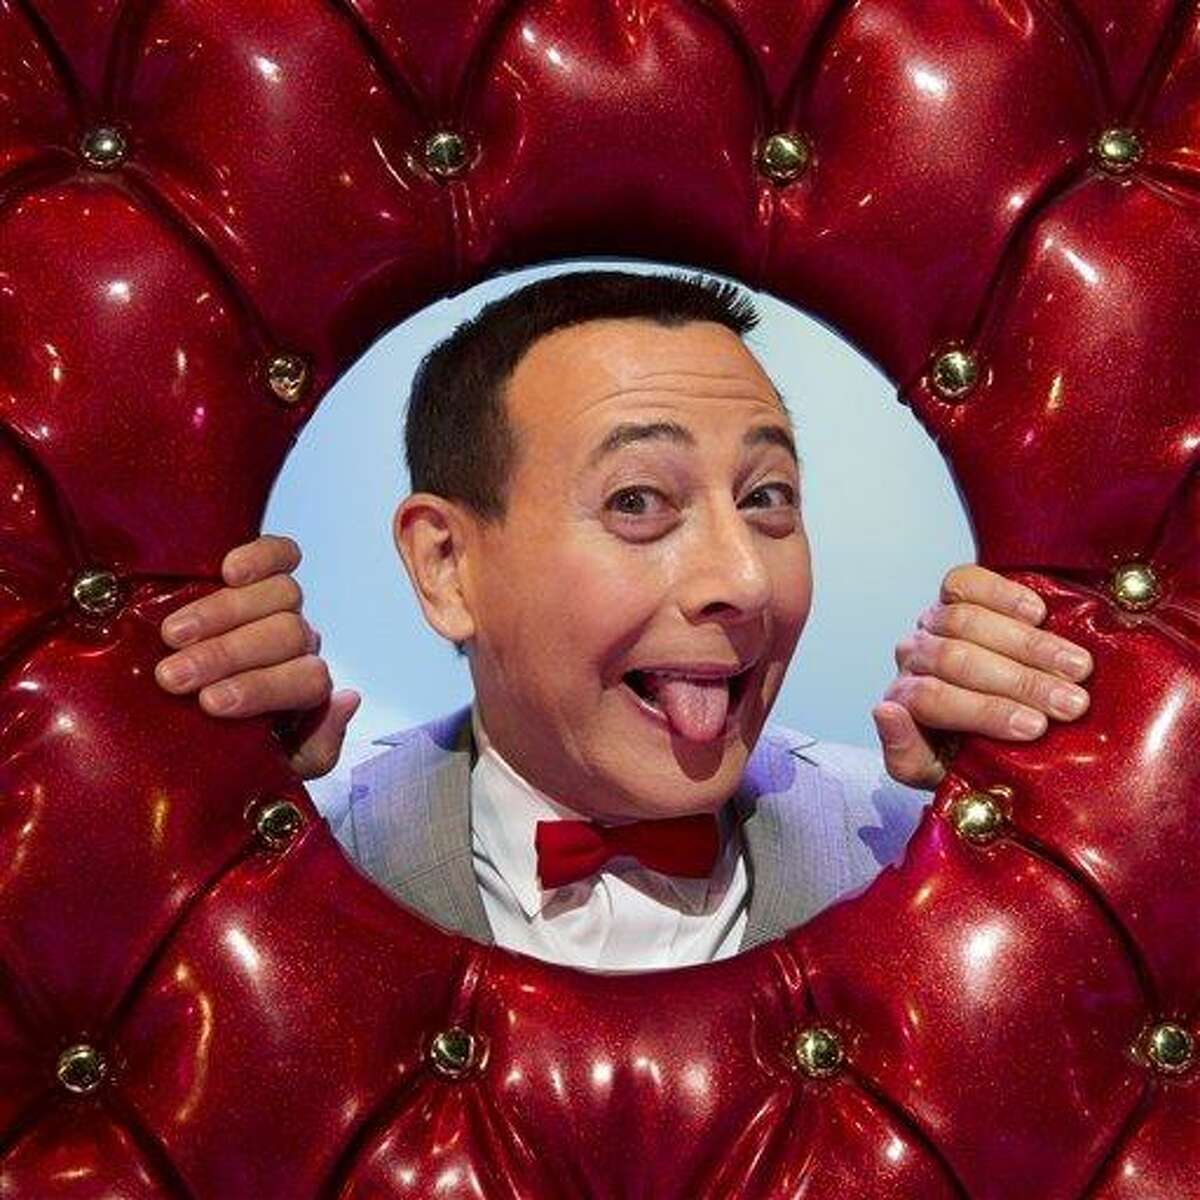 In this Friday, Oct. 29, 2010 photo, Paul Reubens, in character as Pee-wee Herman, poses on stage after a performance of